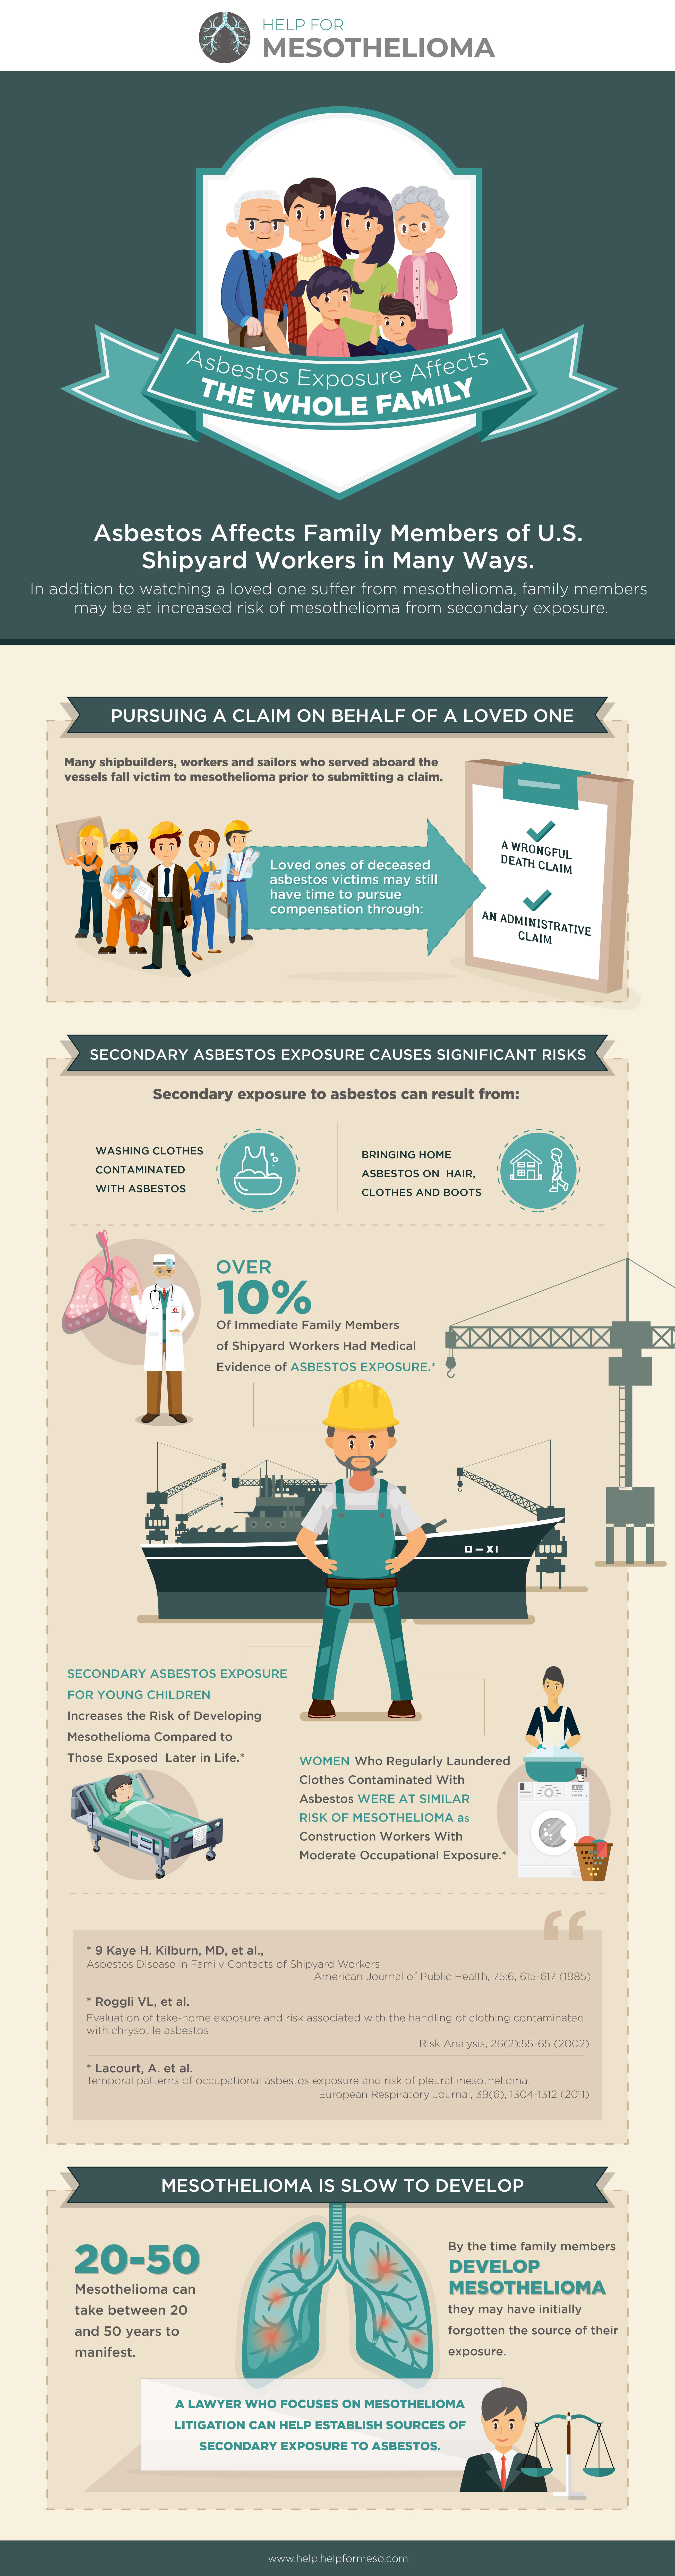 New Infographic for Mesothelioma